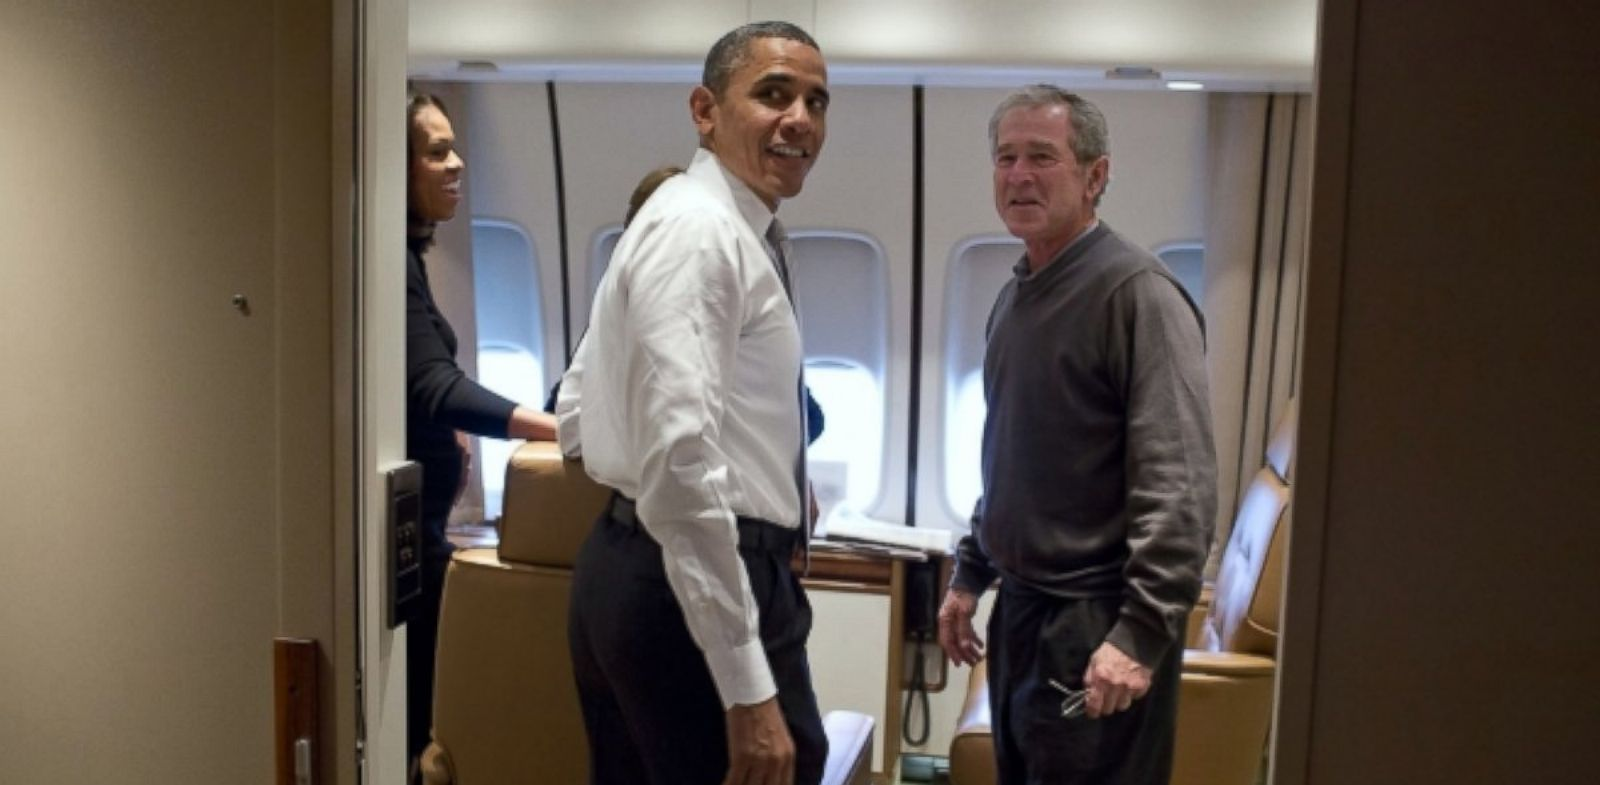 President Barack Obama jokes with former President George W. Bush shortly after boarding Air Force One for the trip to South Africa, Dec. 9, 2013.